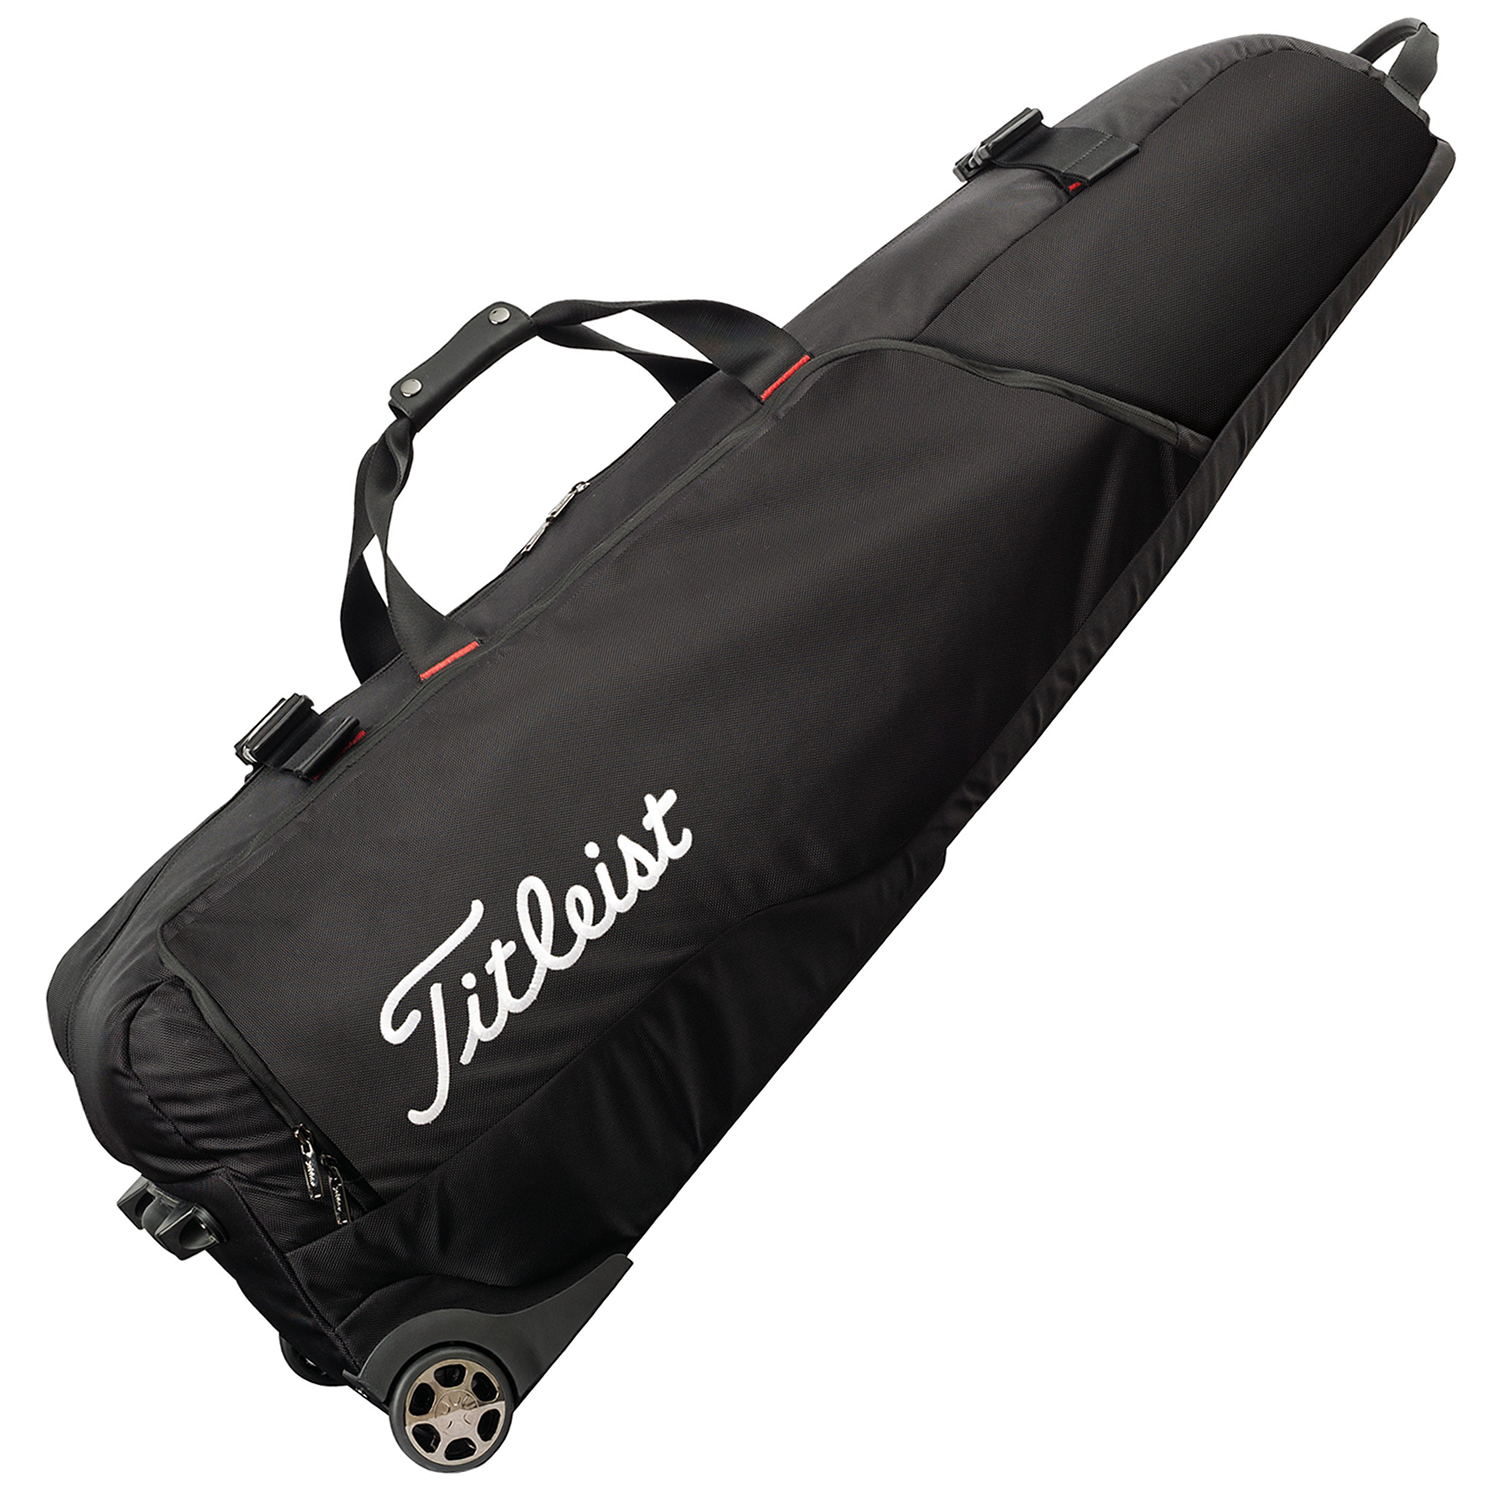 Titleist Golf Bag Travel Cover